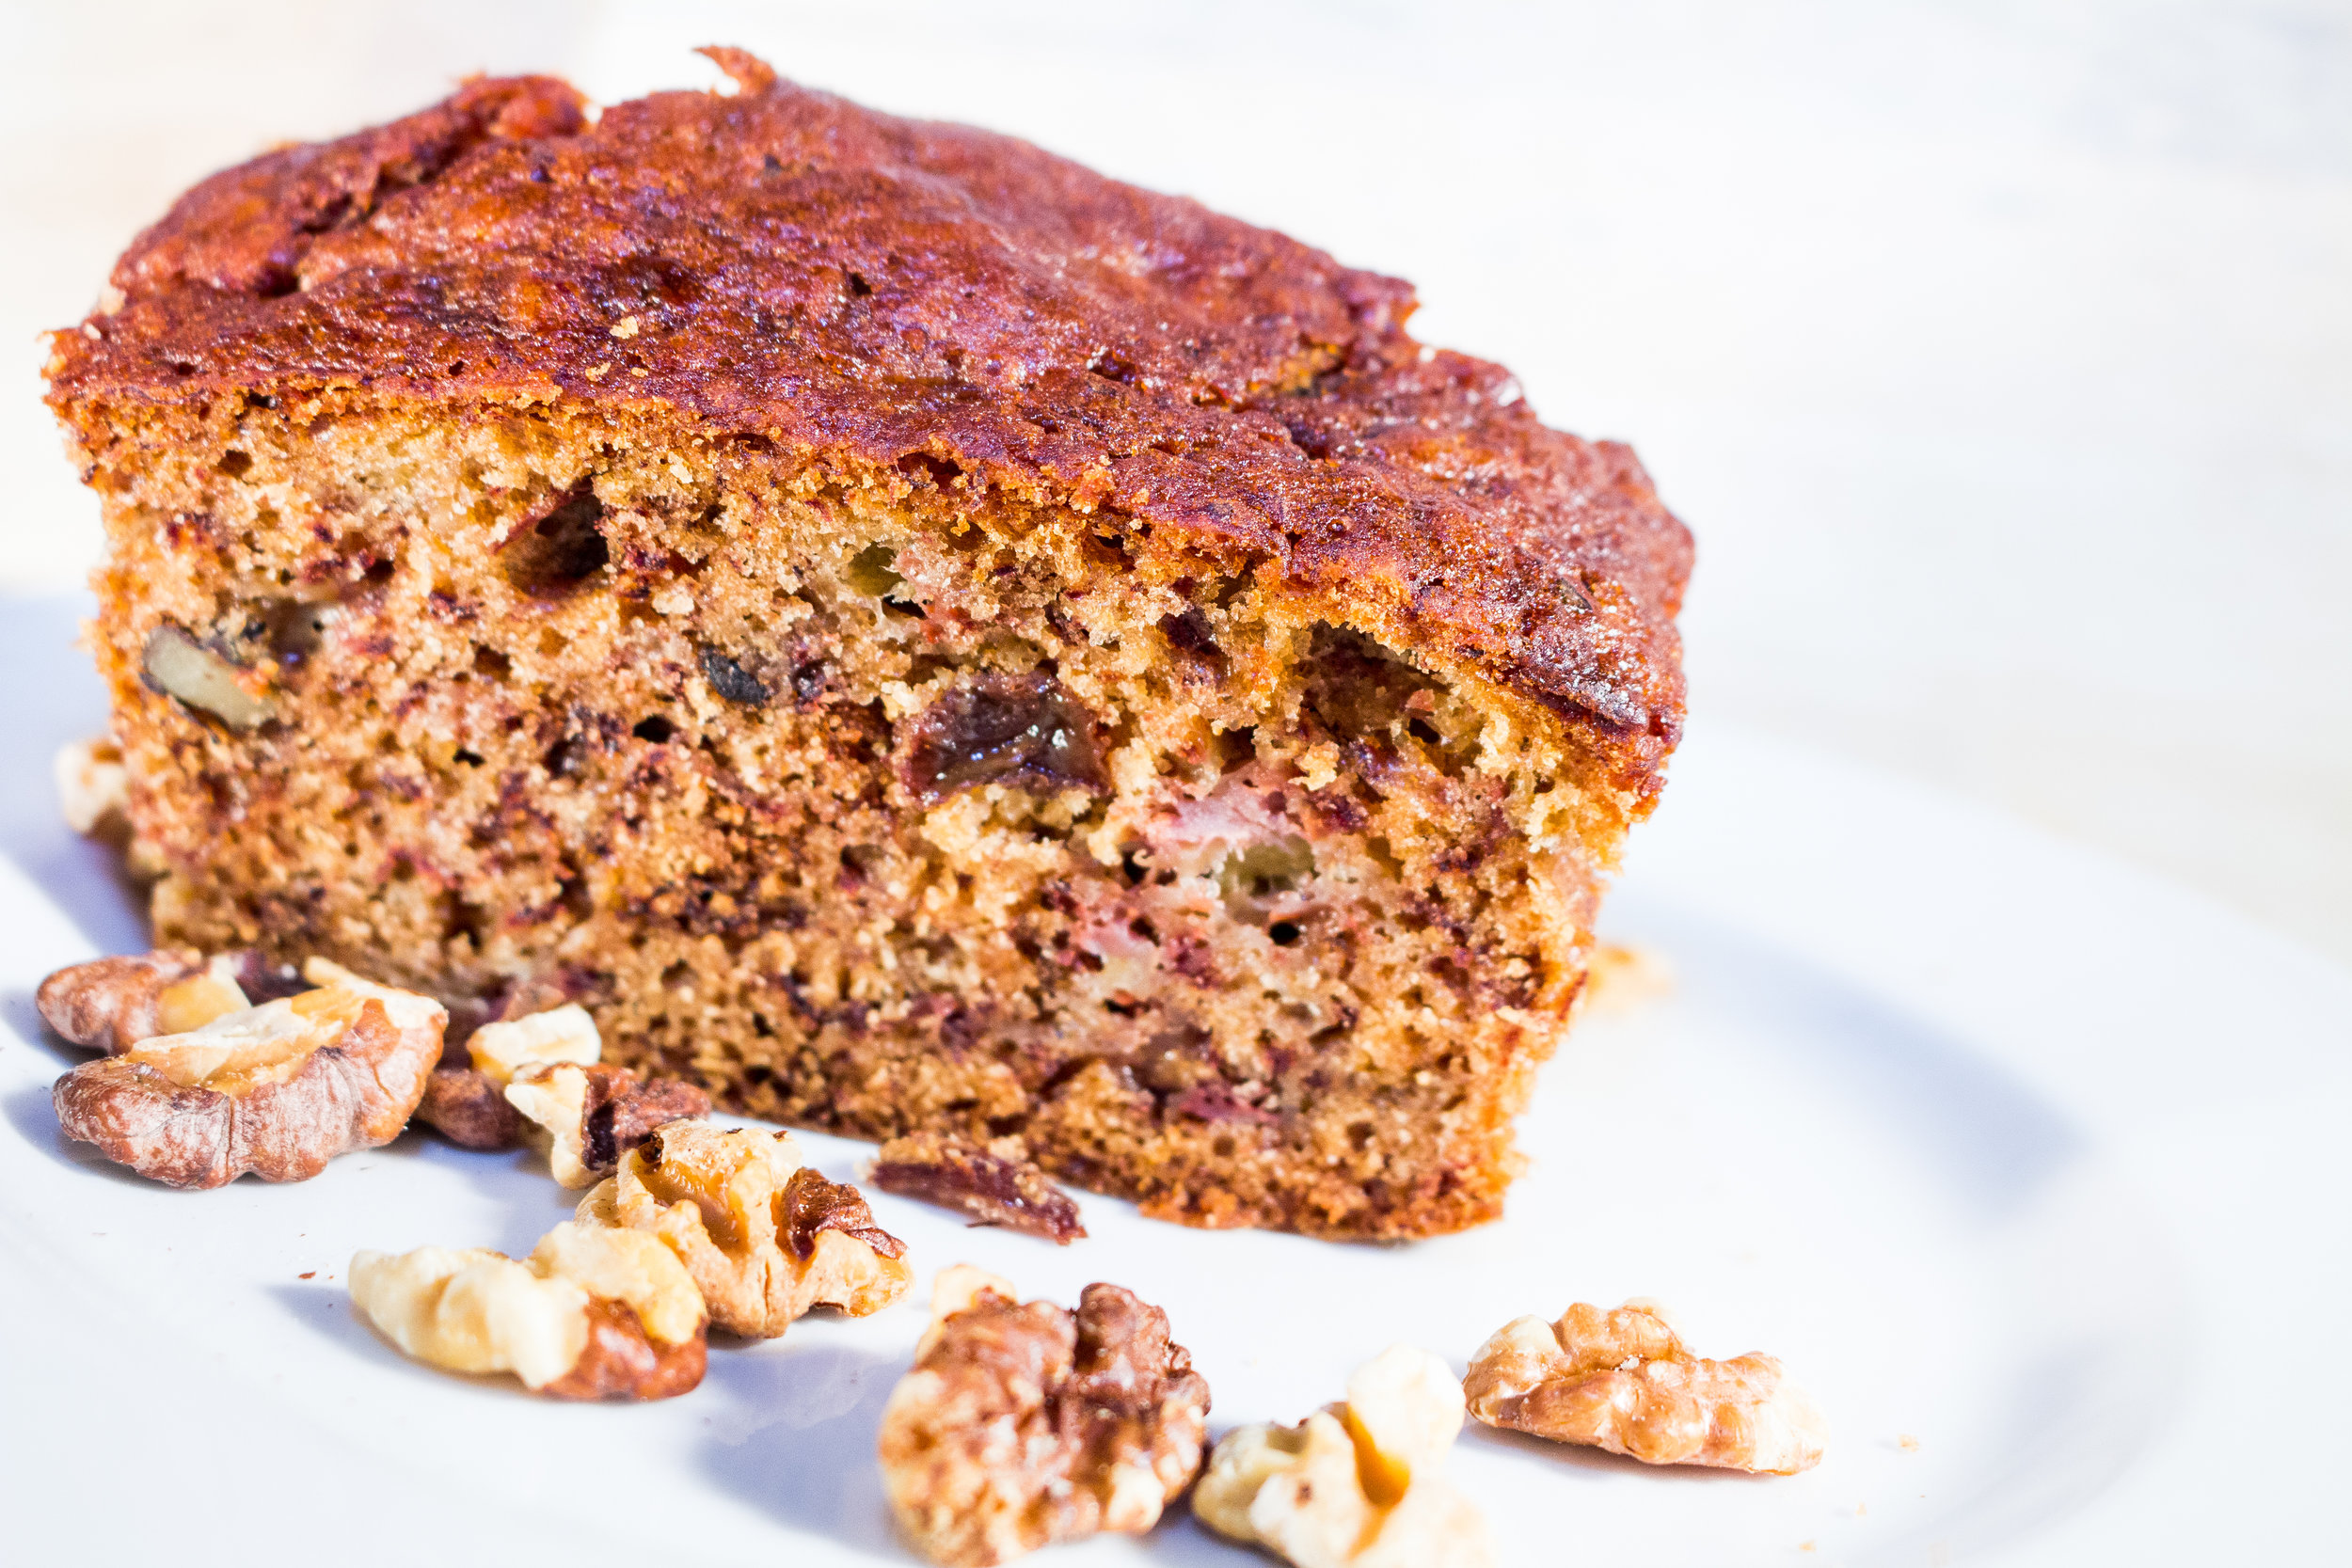 BANANA BREAD ² ⁴ ⁷ ¹⁰ - OUR FABULOUS BANANA BREAD LOAF IS ONE OF OUR MOST POPULAR TREATS. A MOIST LOAF LOADED WITH SEEDS AND WALNUT PIECES